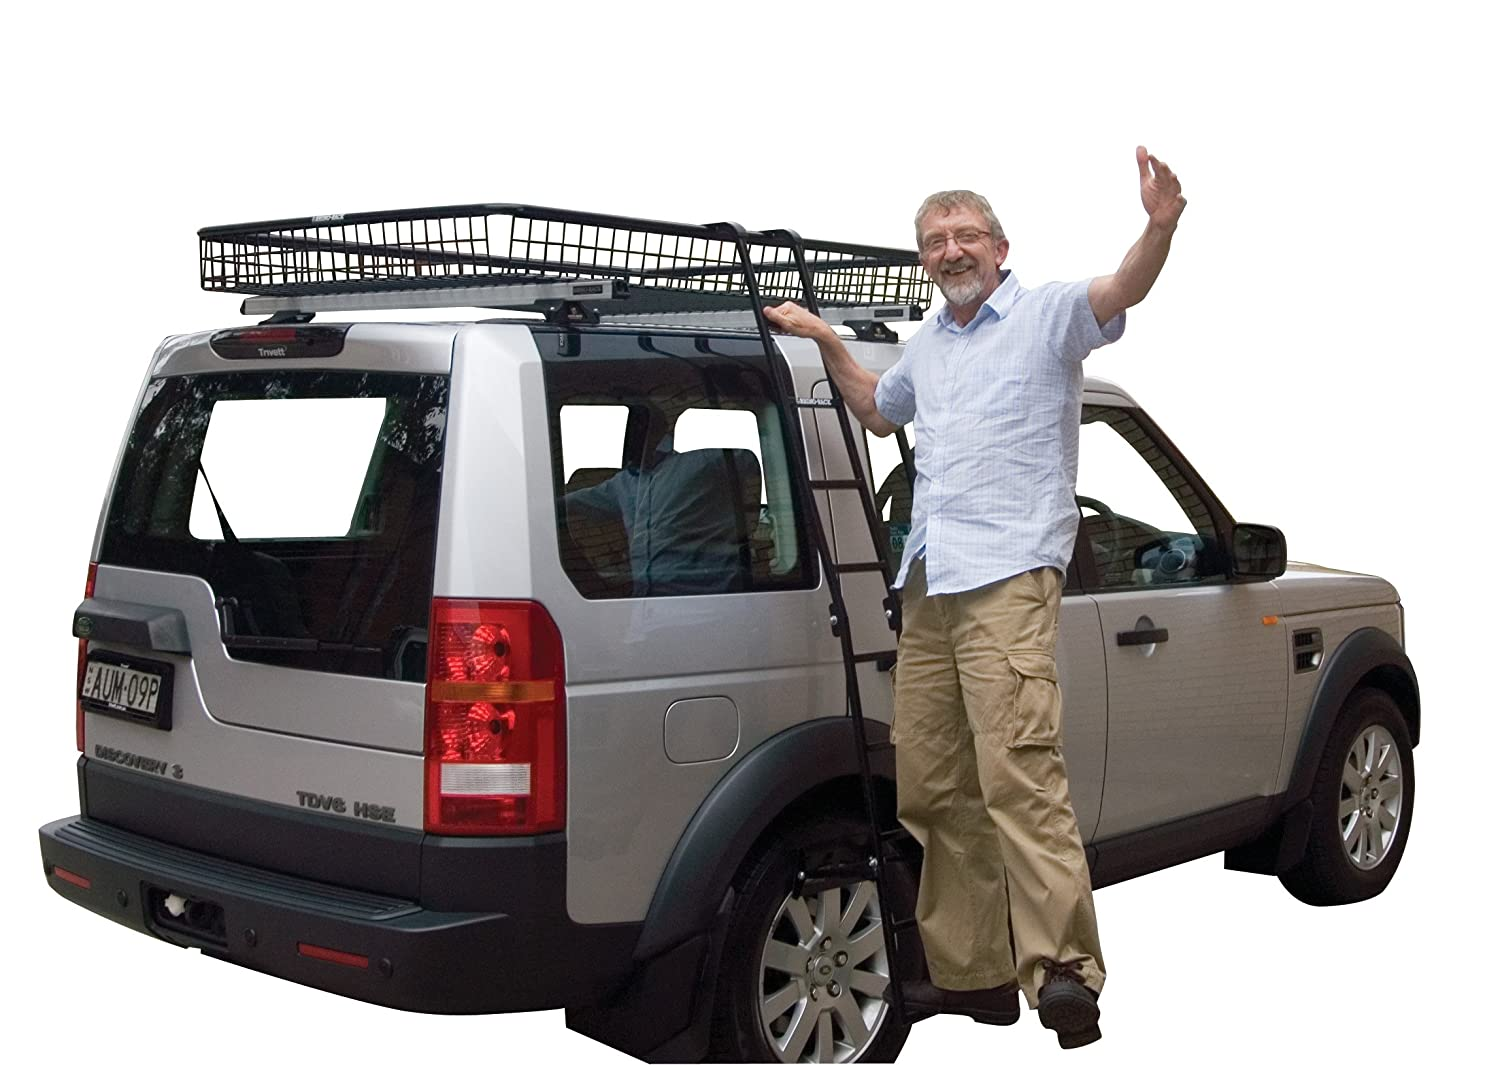 racks van free suv for truck rack ladder lg moonlighter tread shipping cross